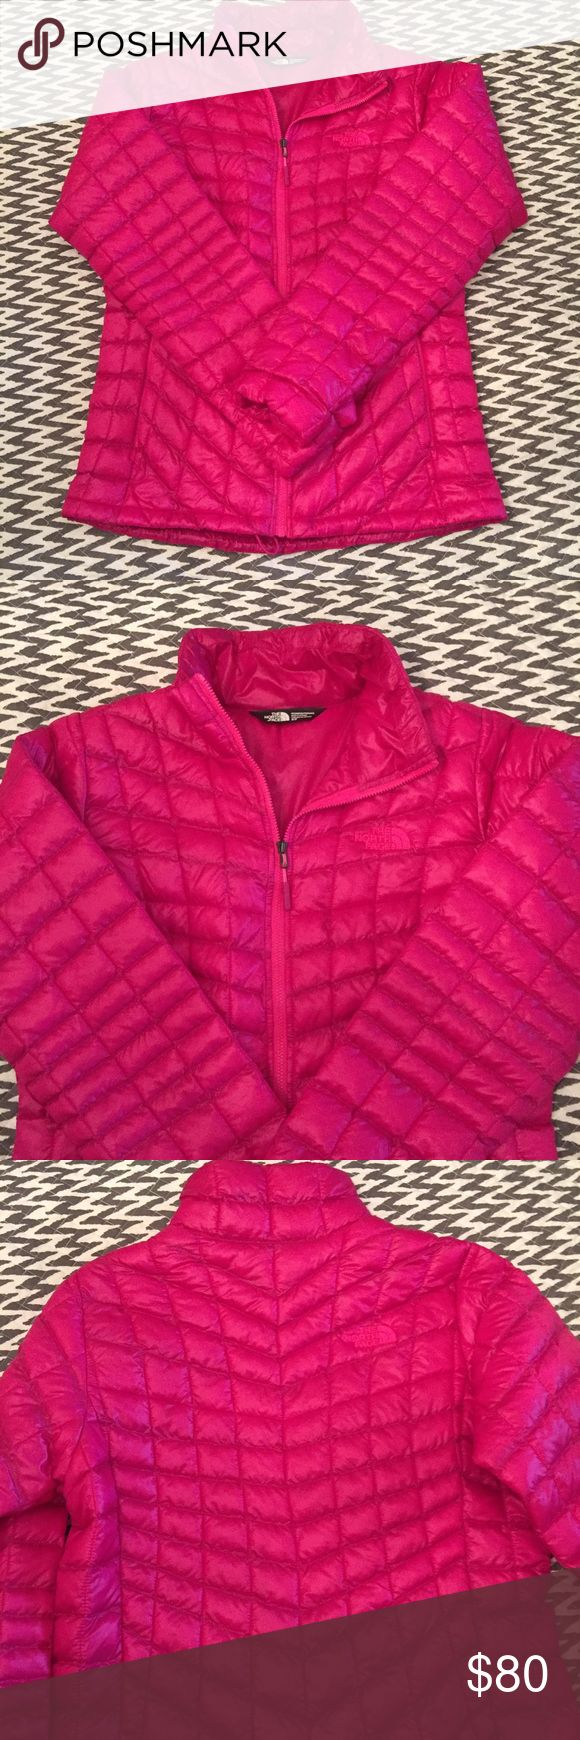 North Face Thermoball Jacket New hot pink Thermoball jacket. Worn once. Too many puffy jackets unworn in my closet! This beauty deserves to be worn! North Face Jackets & Coats Puffers